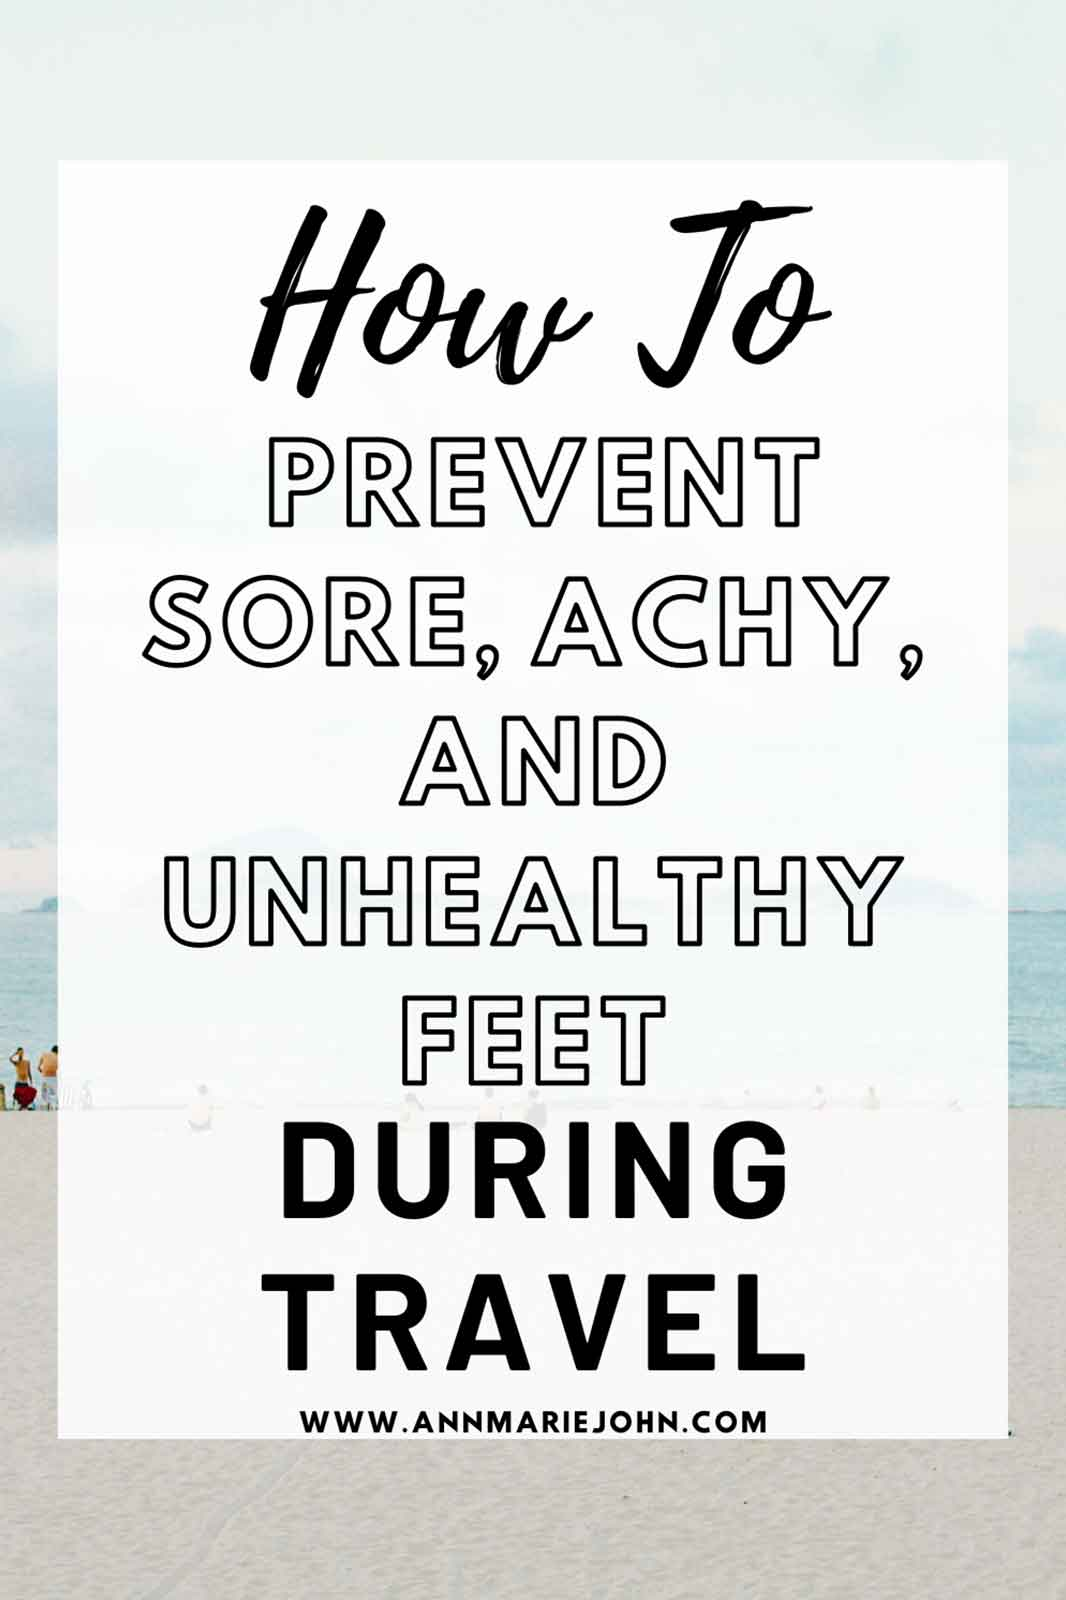 How to Prevent Sore, Achy, and Unhealthy Feet During Travel